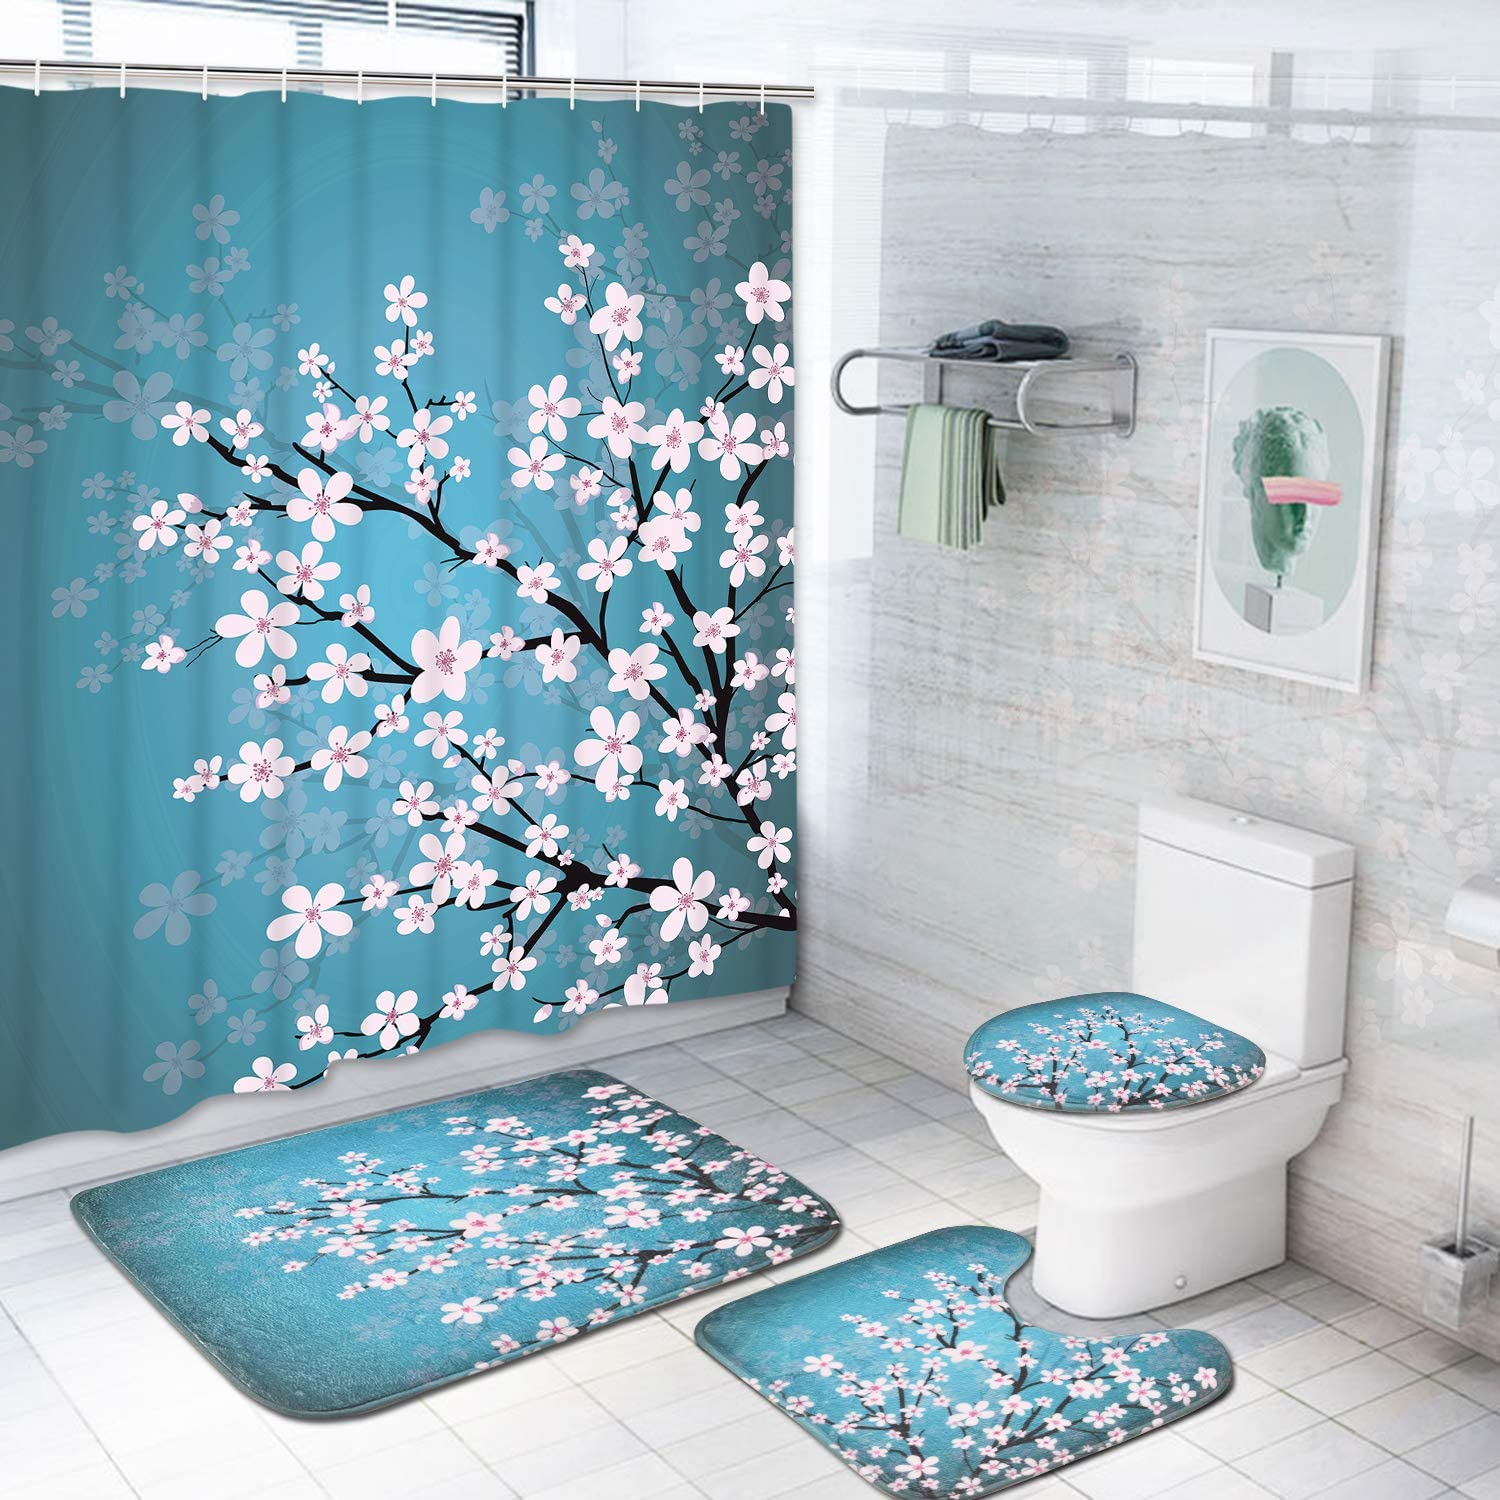 Pknoclan 4 Pcs Japanese Cherry Blossom Shower Curtain Sets with Non-Slip Rugs, Toilet Lid Cover and Bath Mat, Spring Sakura Flower Shower Curtain with 12 Hooks, Blue Waterproof Durable Bath Curtain